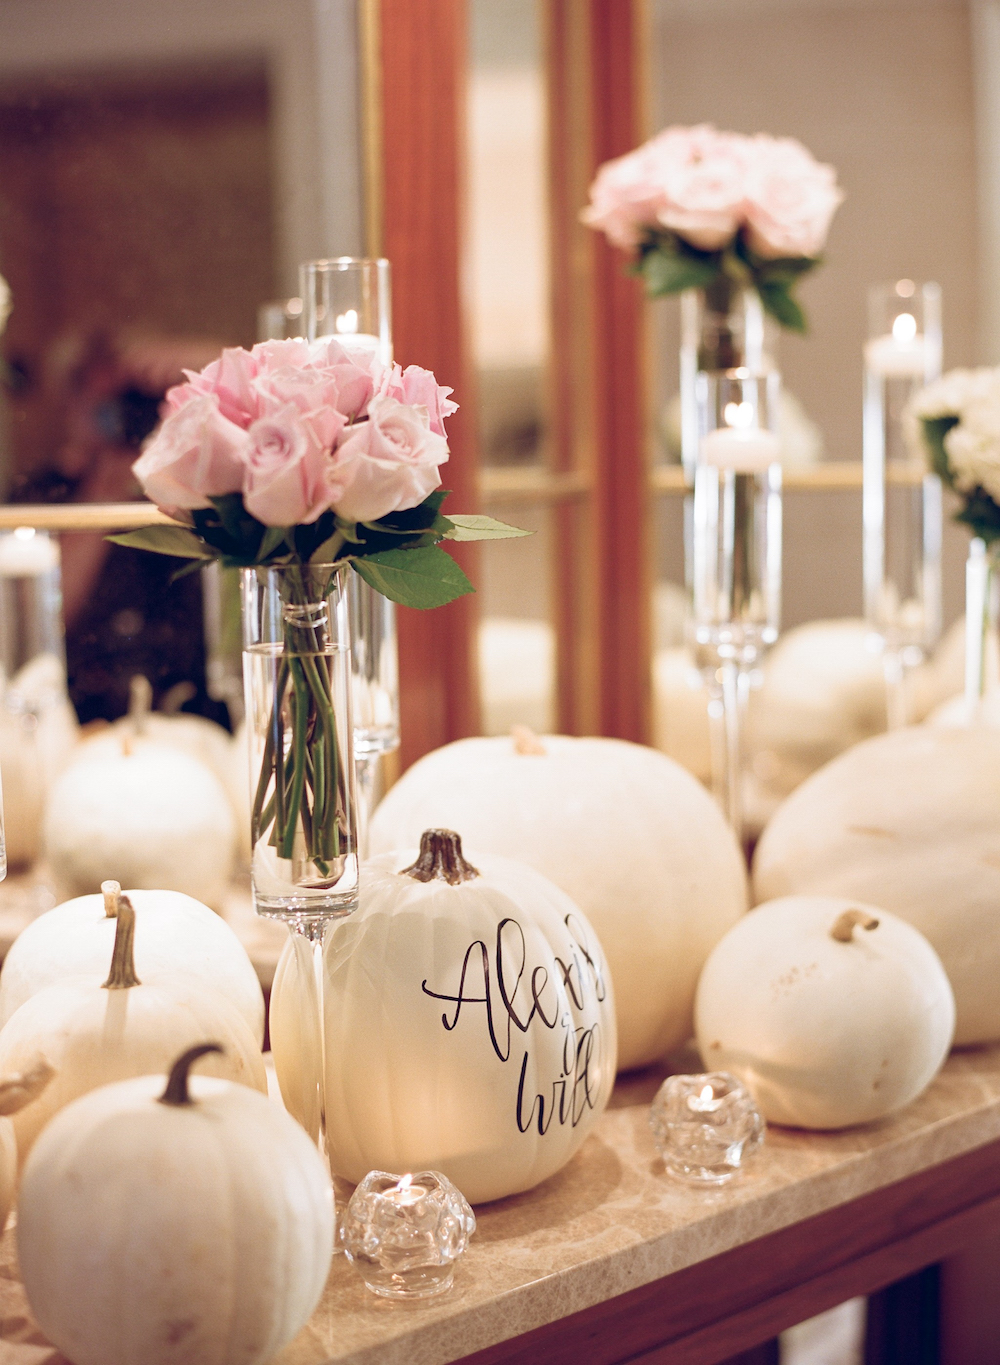 How To Incorporate Pumpkins Into Your Fall Wedding, pumpkin spice wedding inspiration, pumpkins